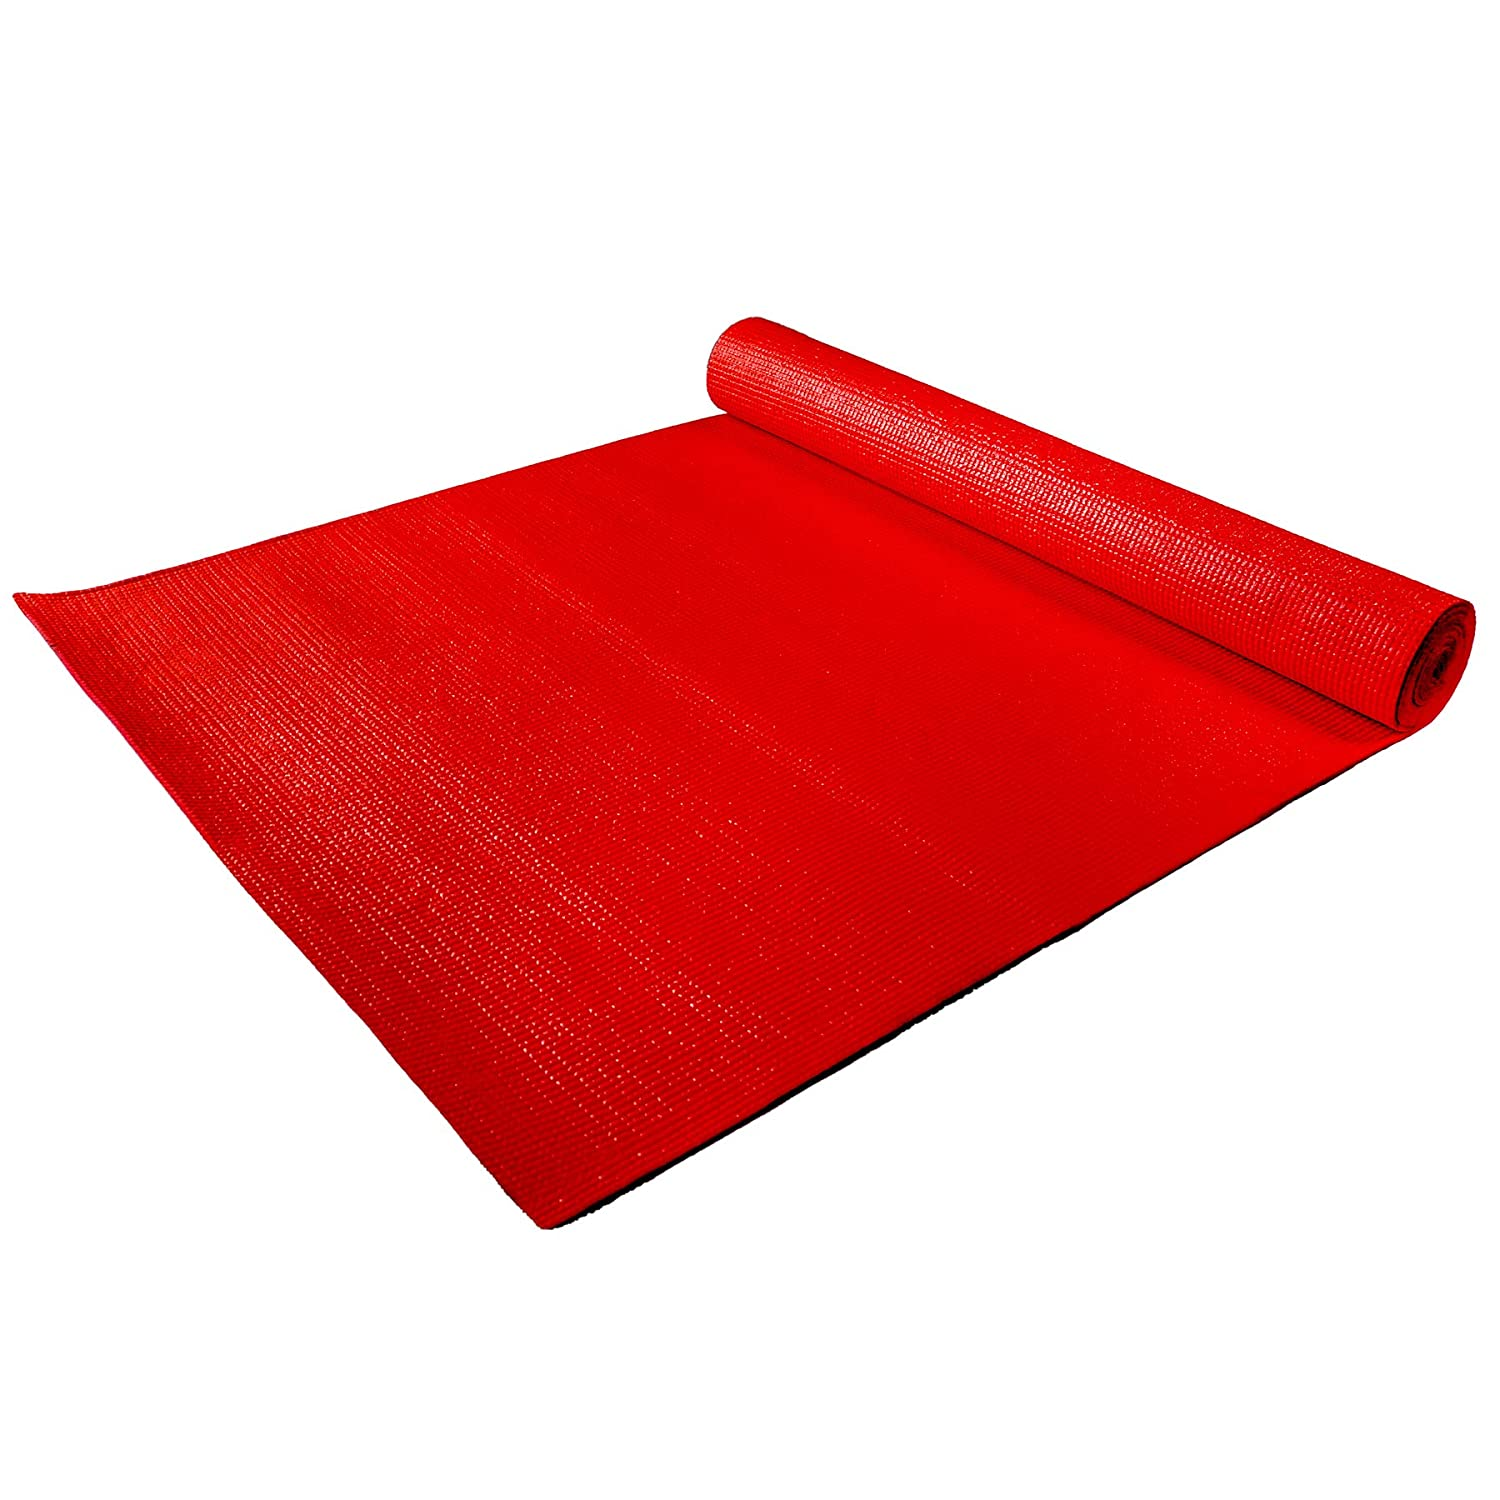 Yoga Mat - 4 mm